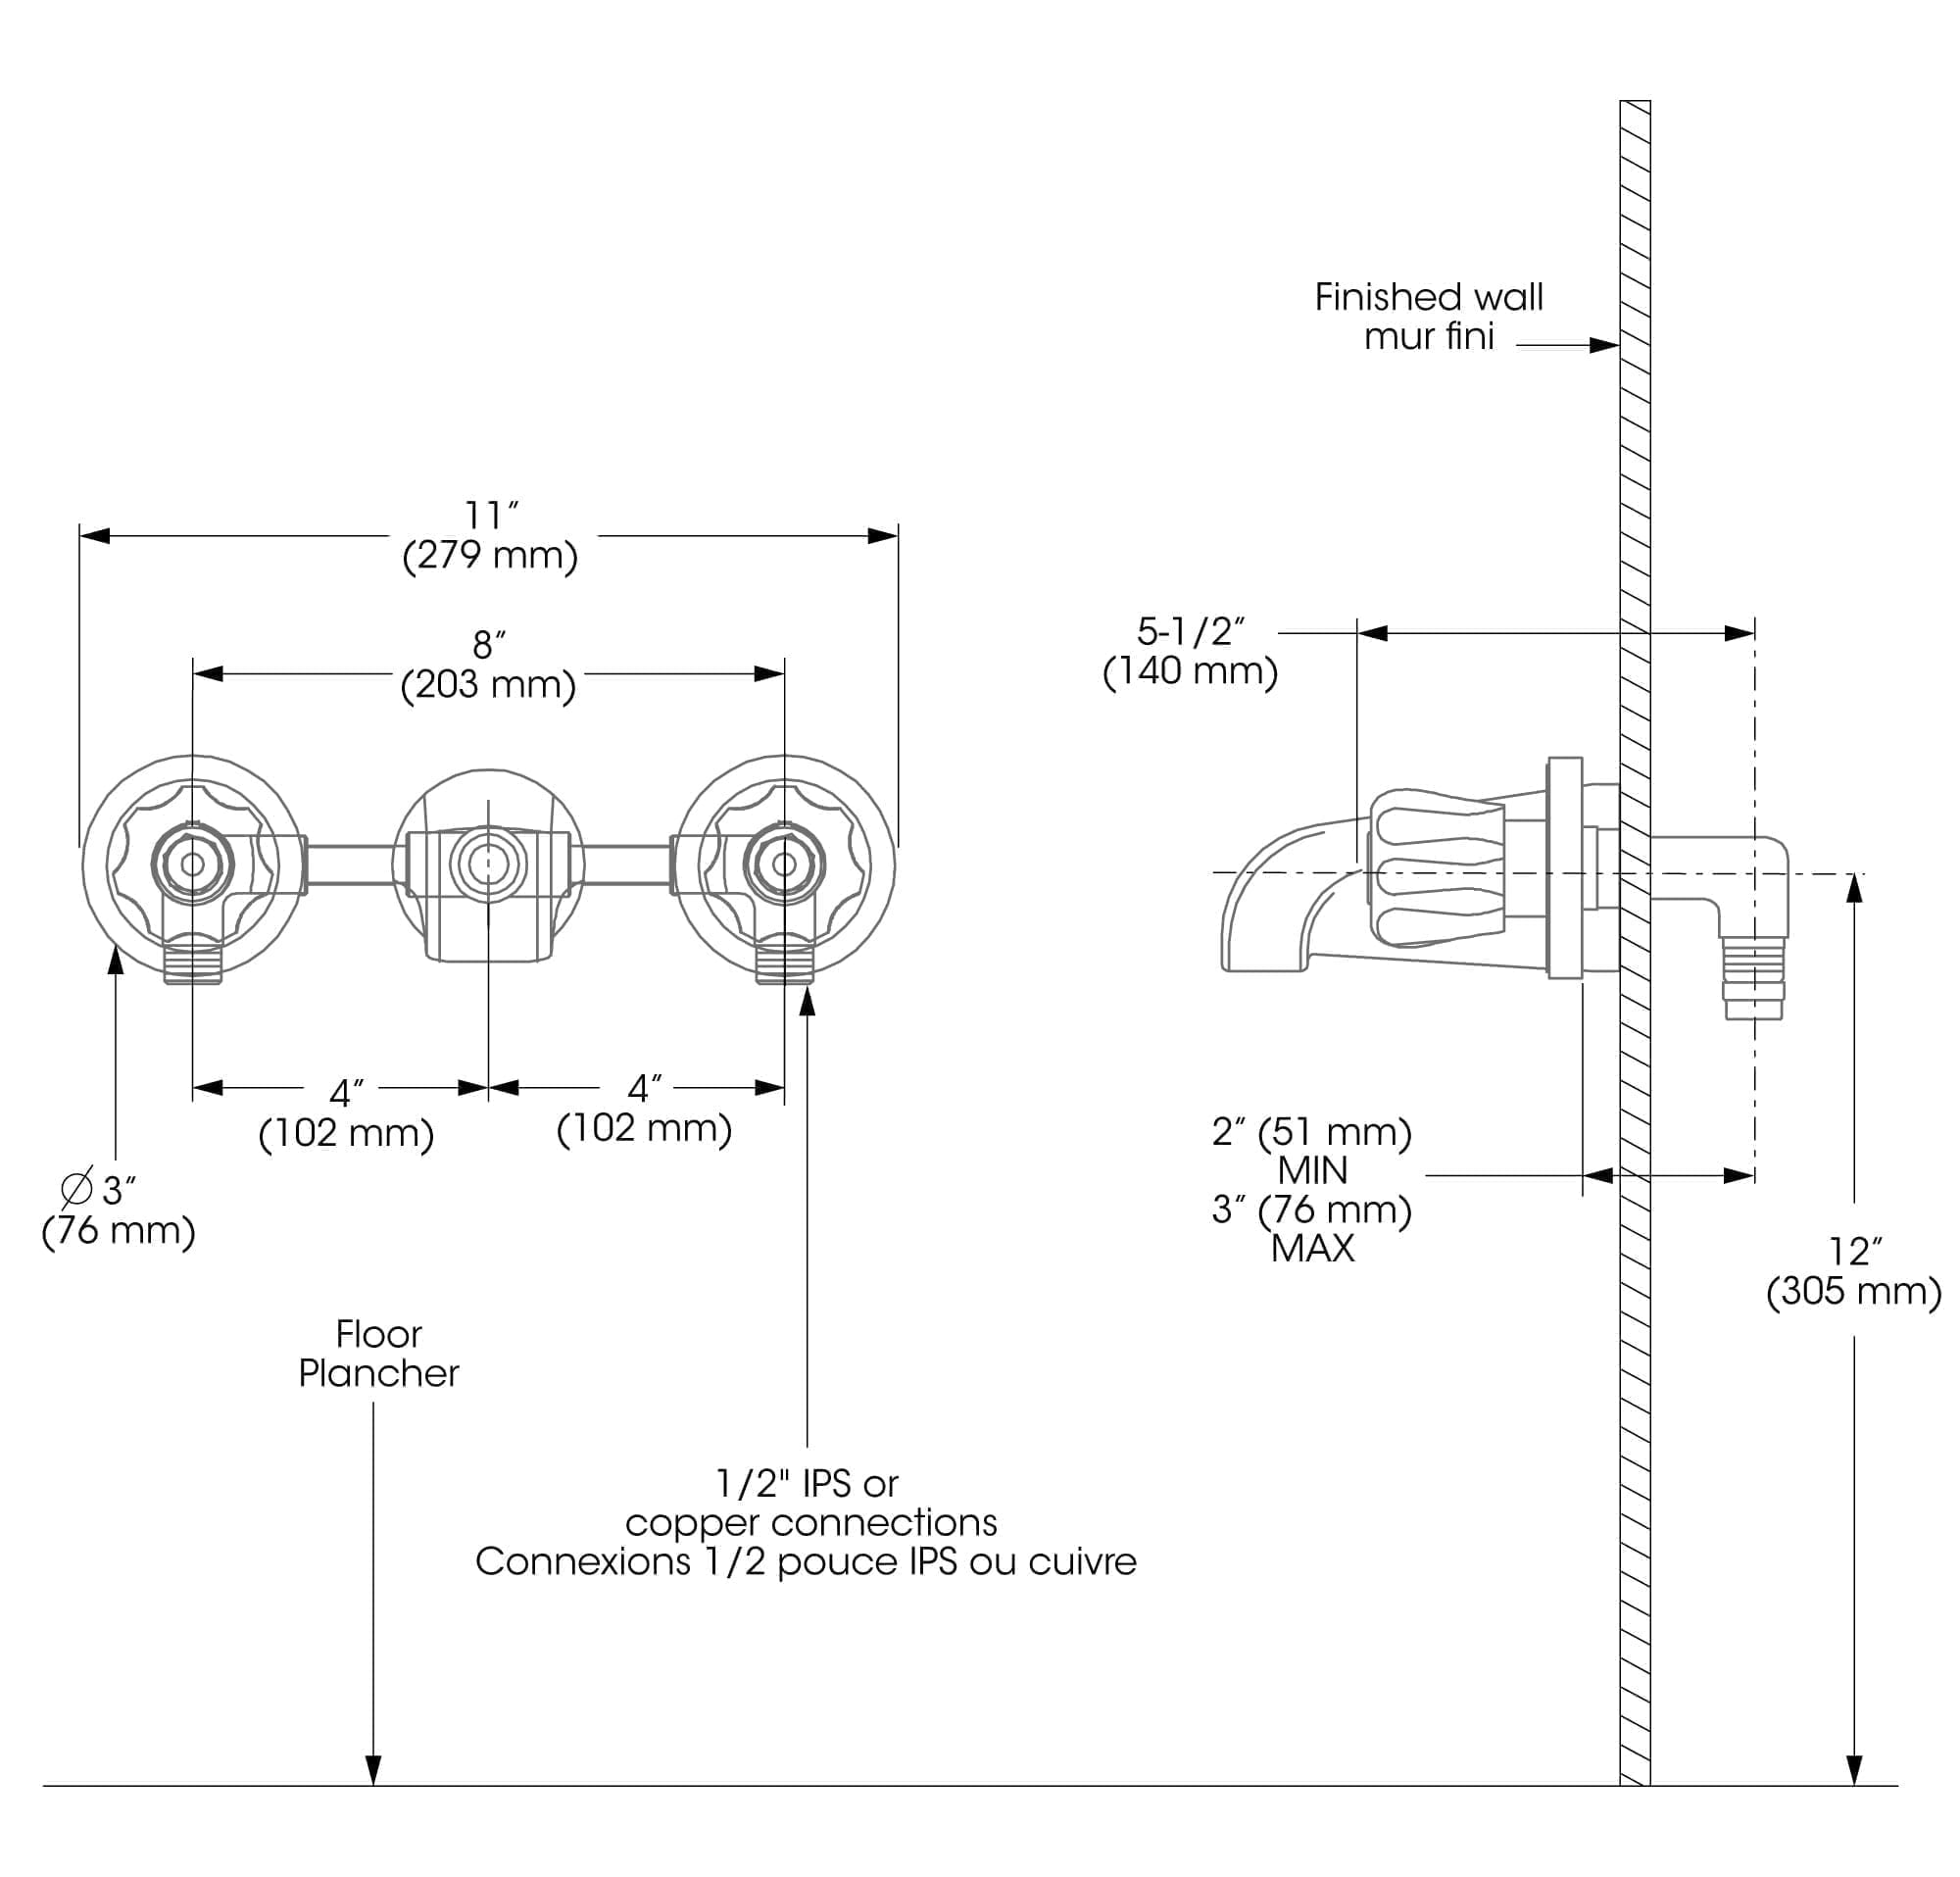 Bathtub Faucet Complete Model Wall Mount Installation Blanger Upt Schematic Engineering Diagram And Support